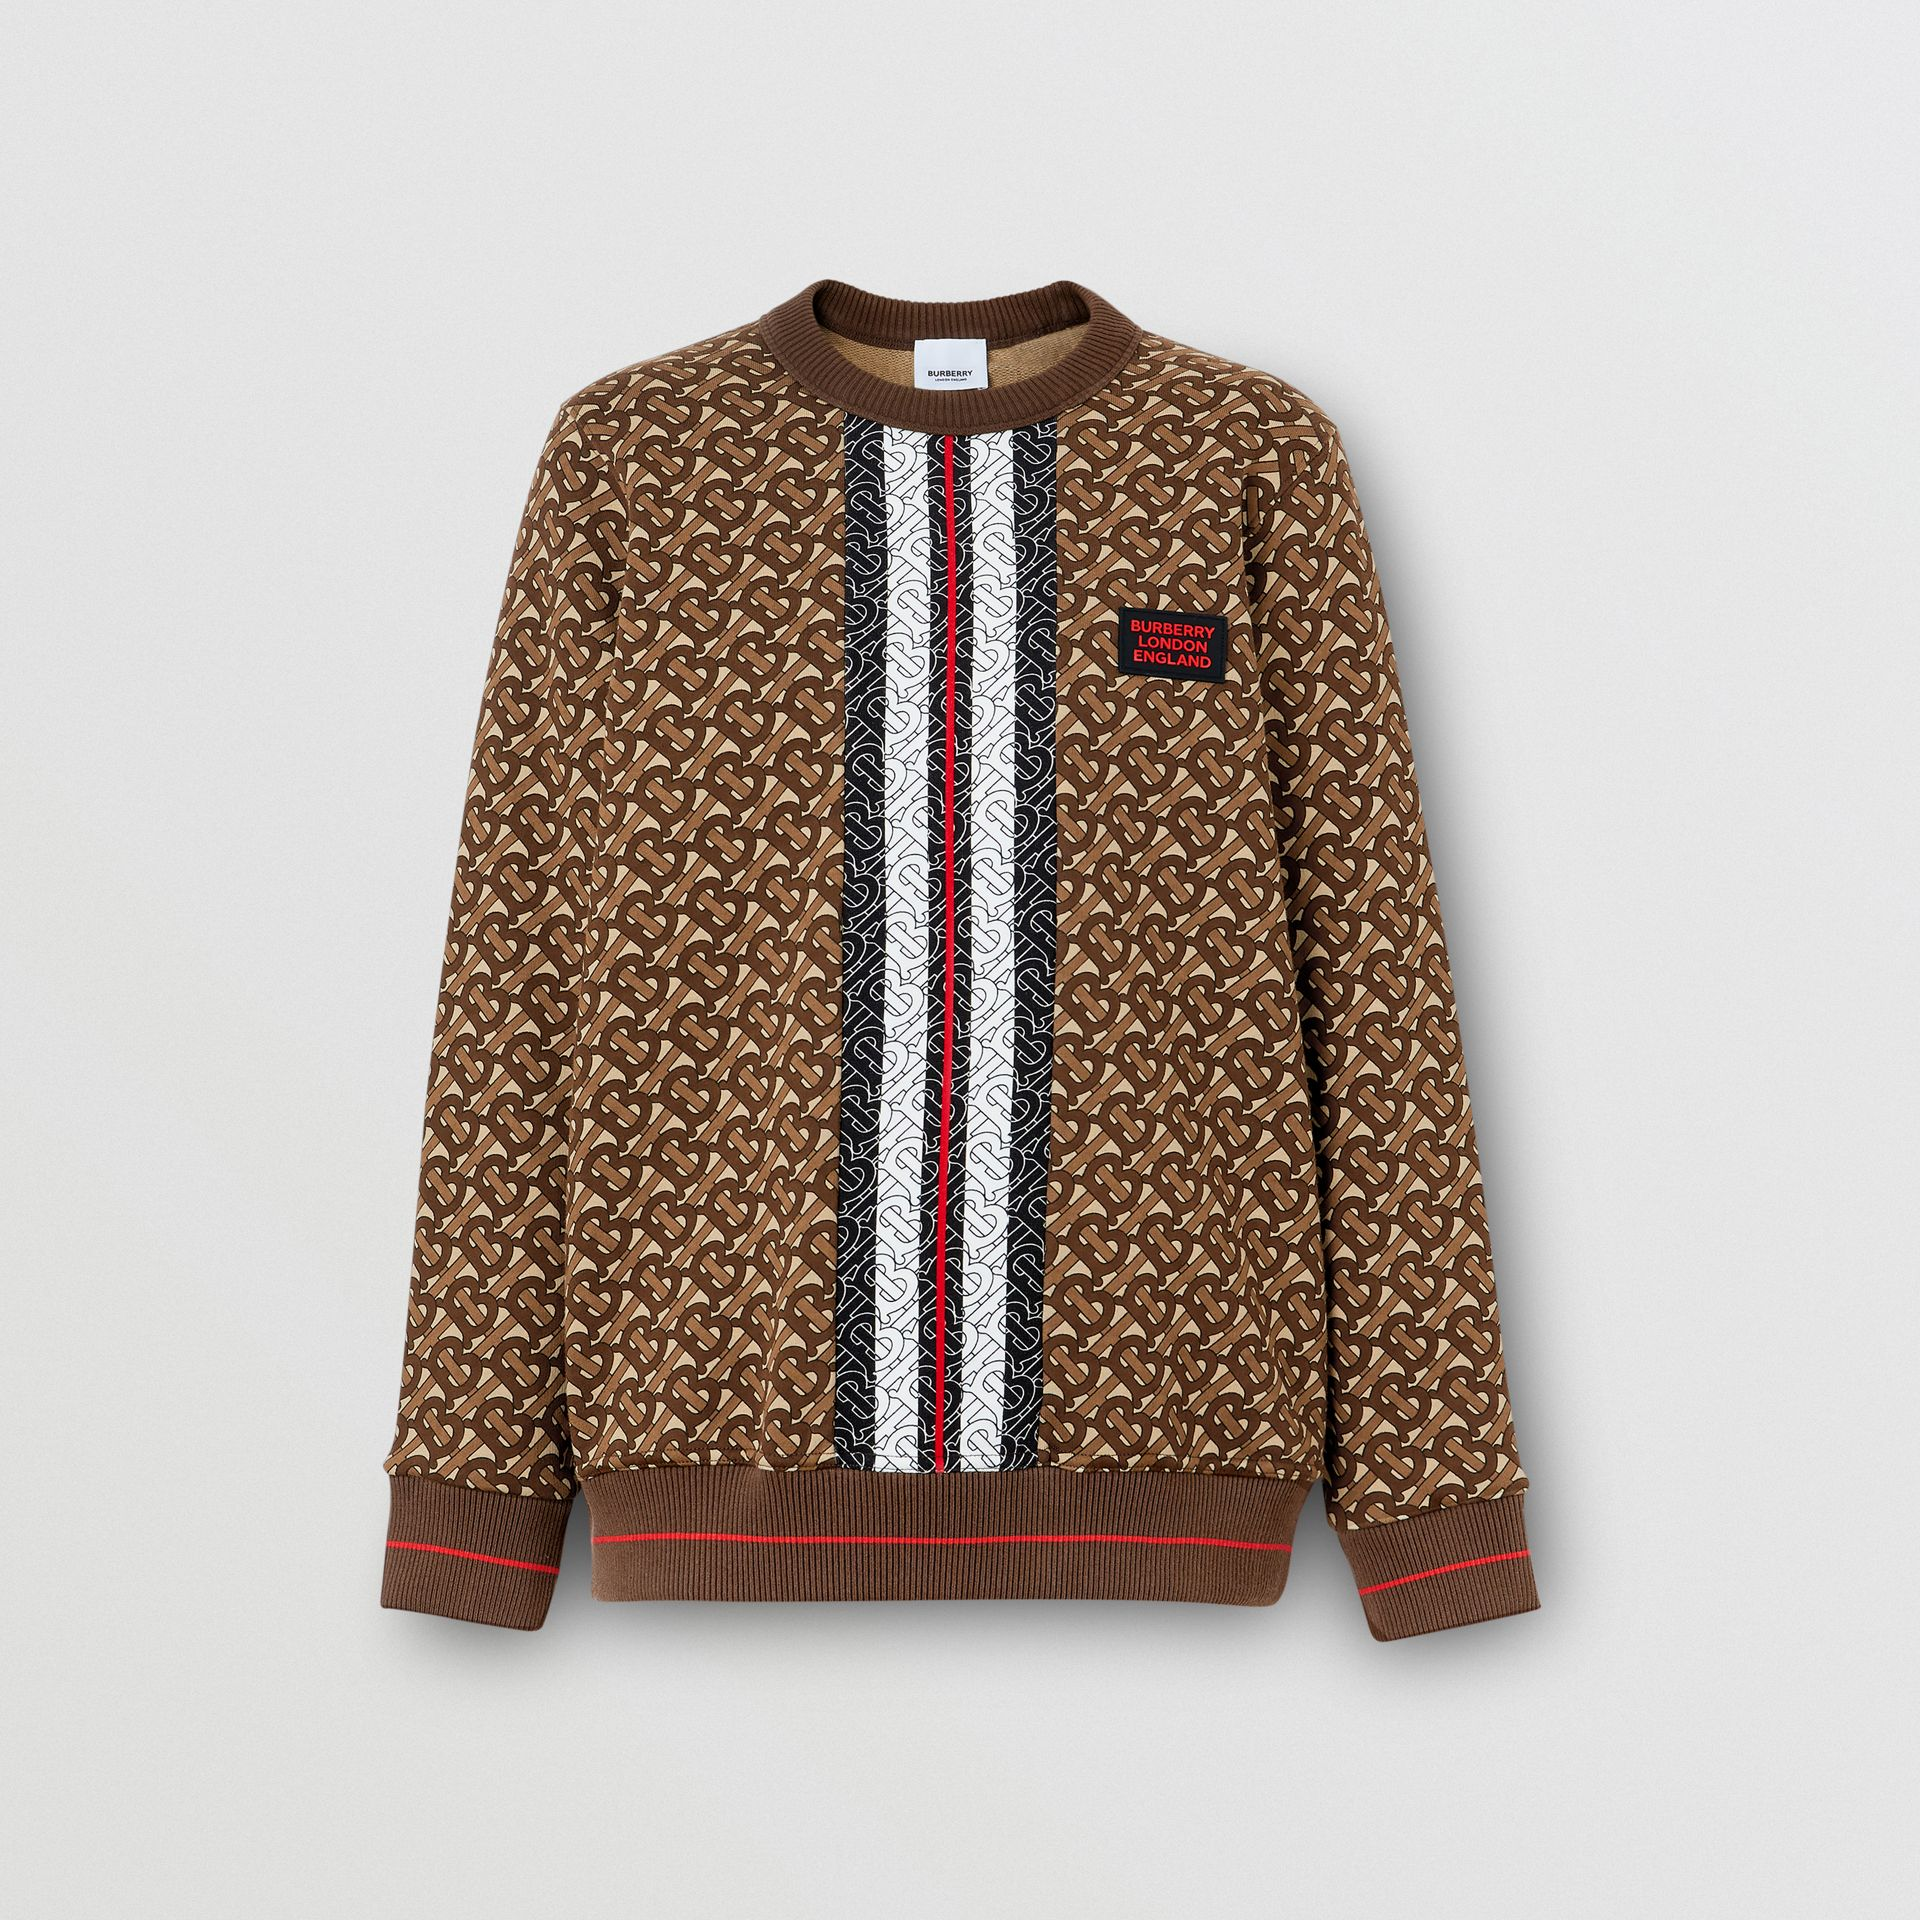 Monogram Stripe Print Cotton Oversized Sweatshirt in Bridle Brown - Women | Burberry - gallery image 3